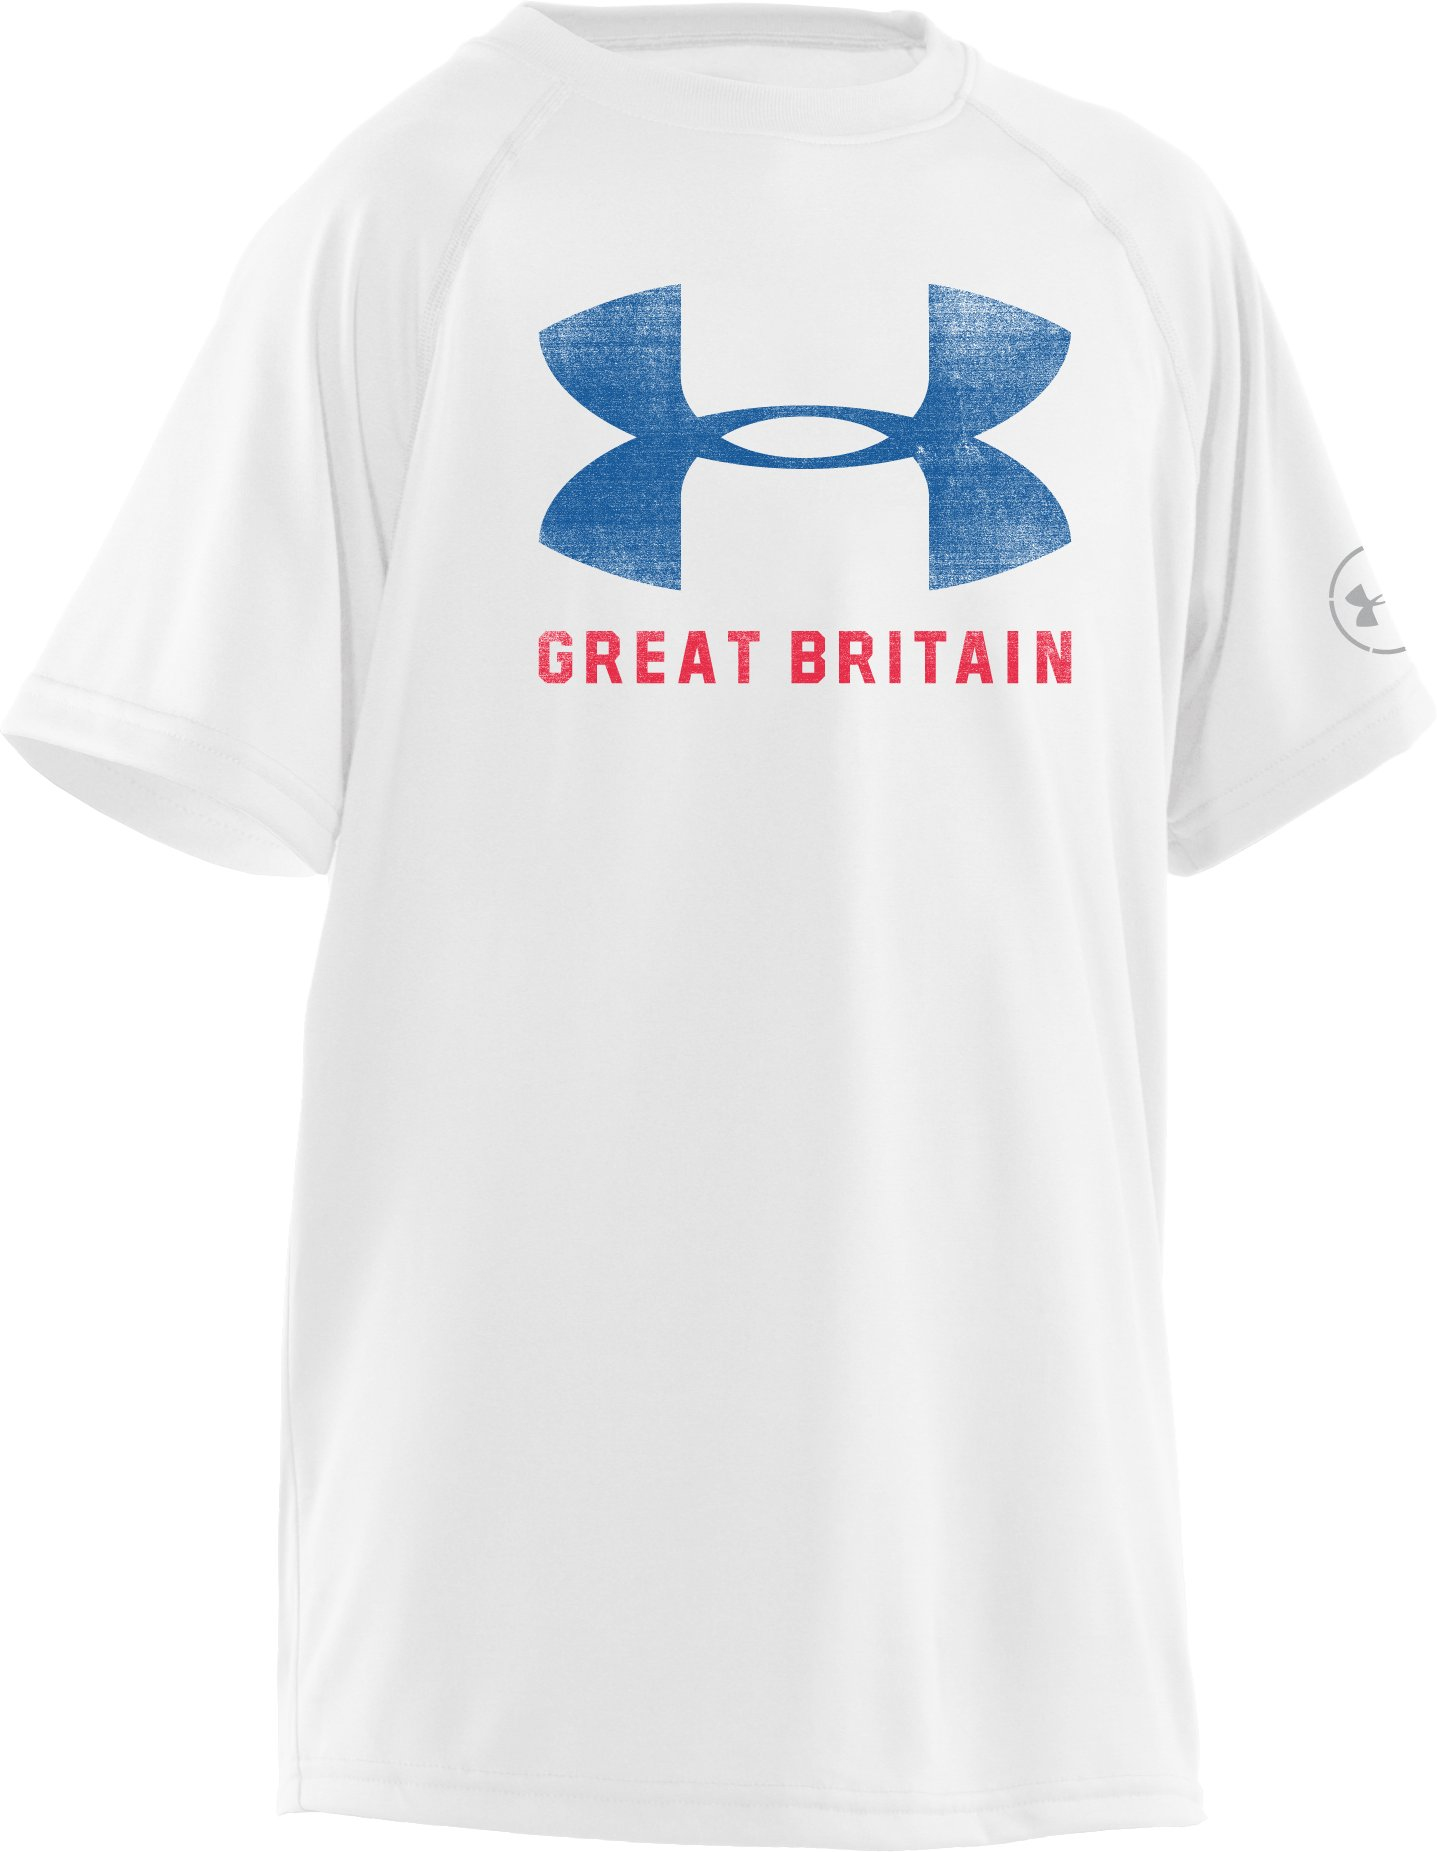 Boys' Great Britain Pride T-Shirt, White, zoomed image